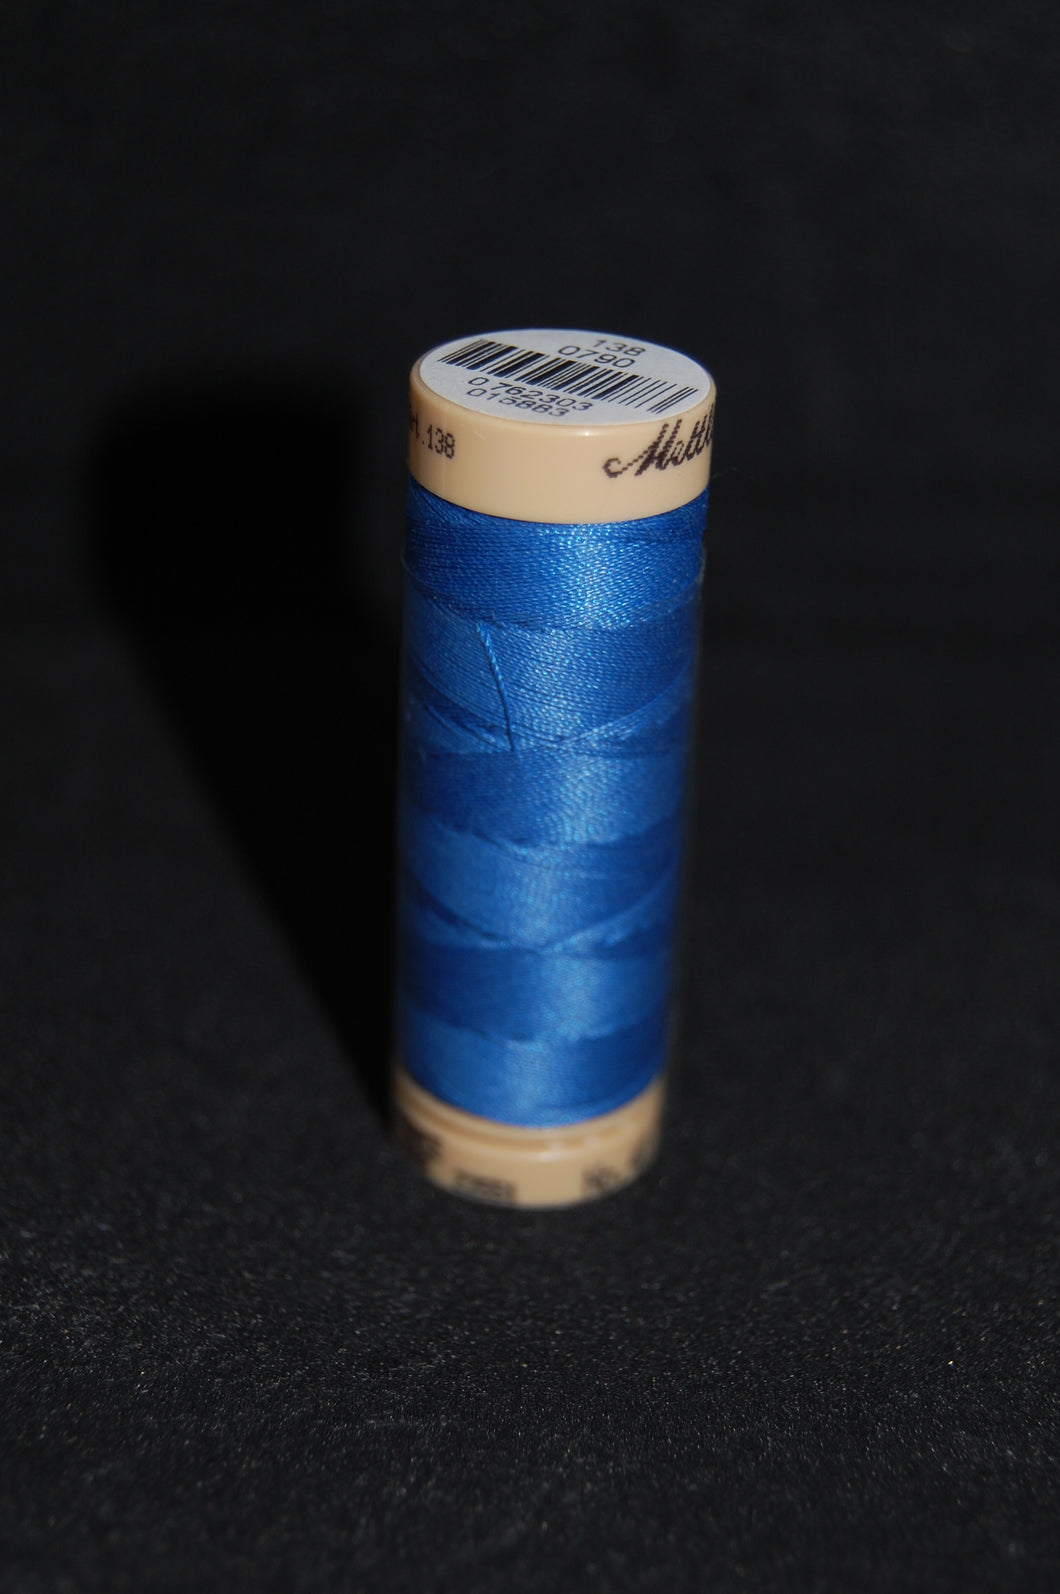 Fabric Shack Sewing Quilting Sew Fat Quarter Cotton Quilt Wax Waxed Hand Thread 40 150m Mid Blue